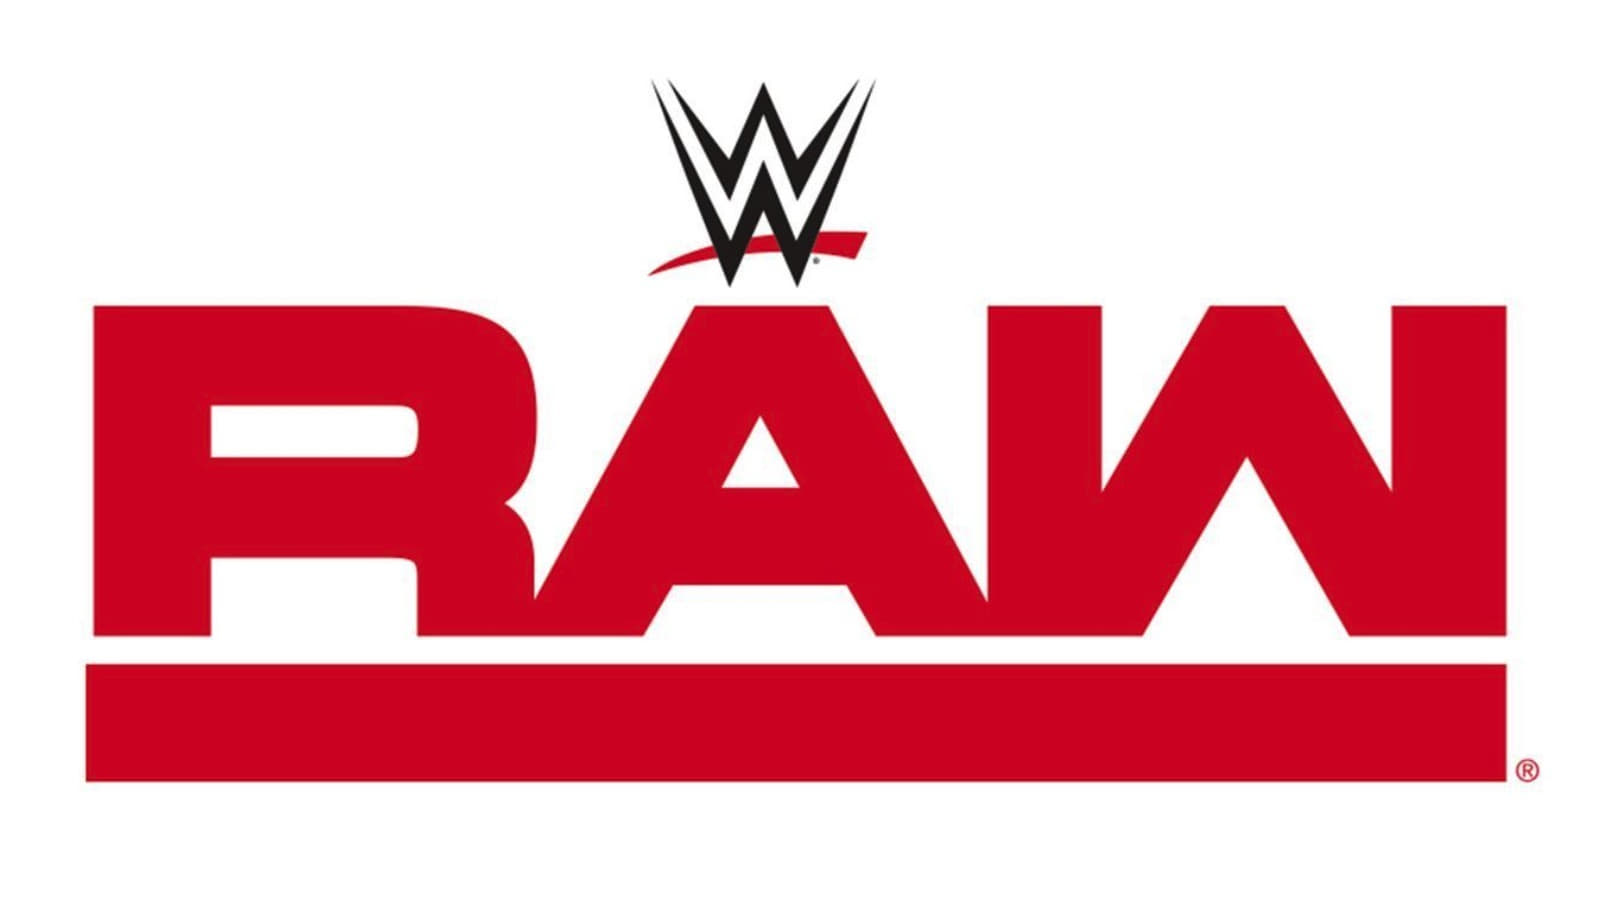 WWE Raw - Season 23 Episode 15 : April 13, 2015 (London, England, UK)